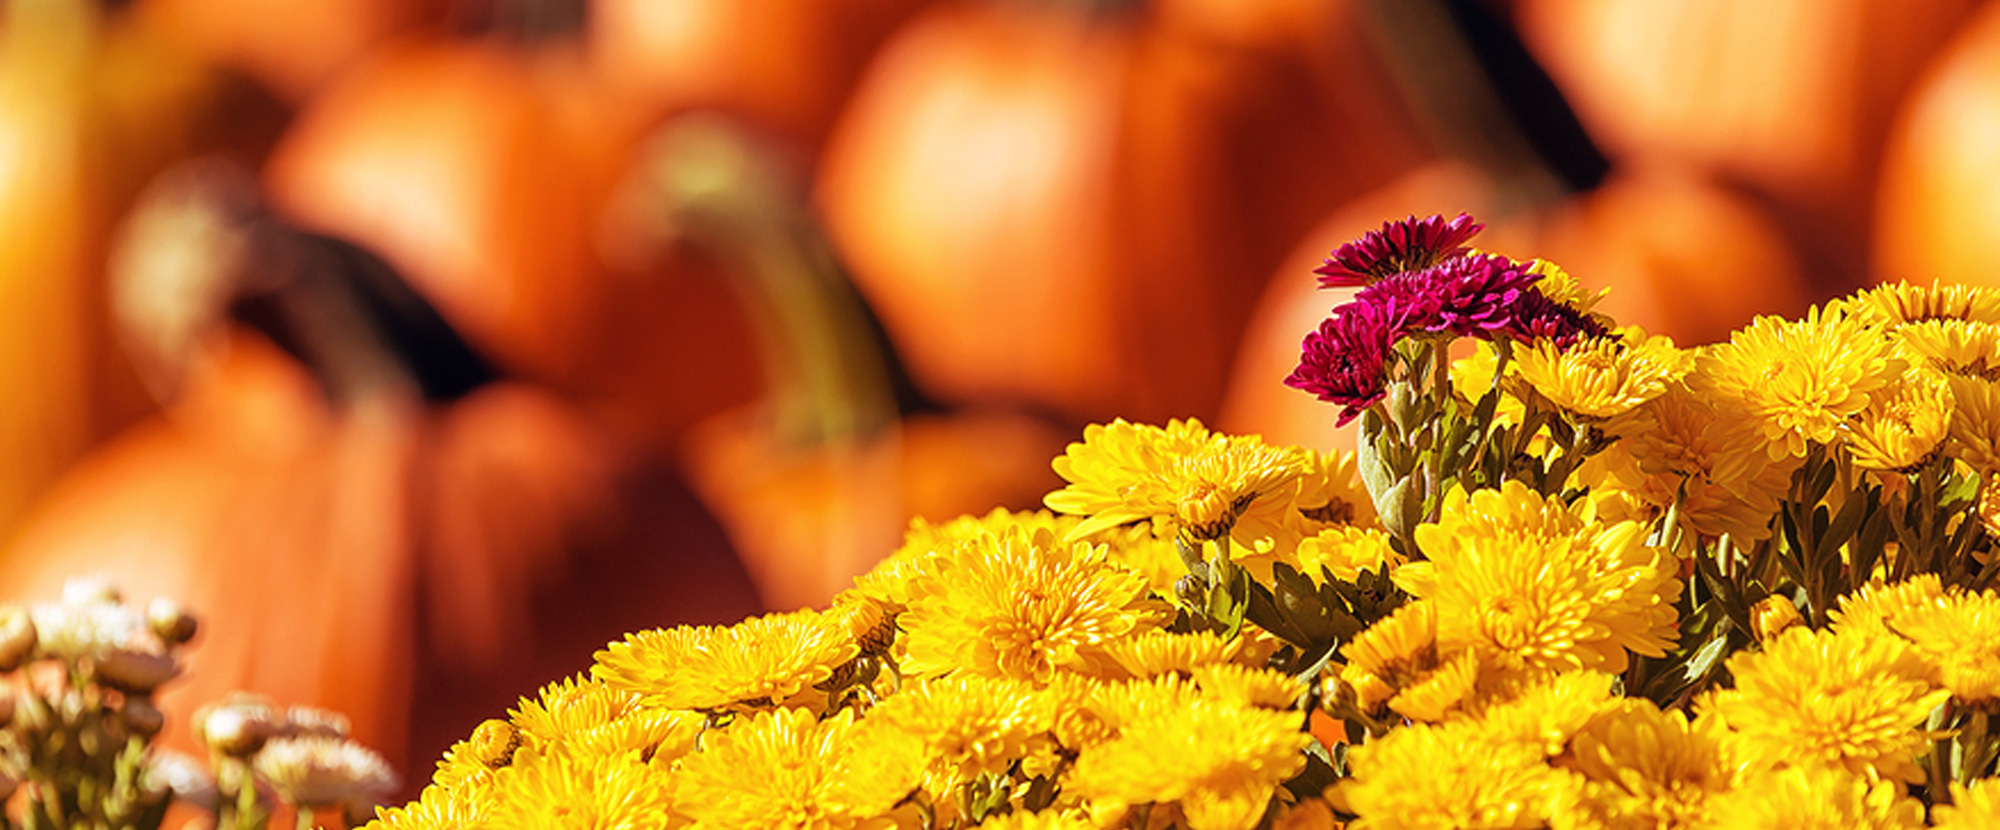 Mums the Word for Fall Decorating